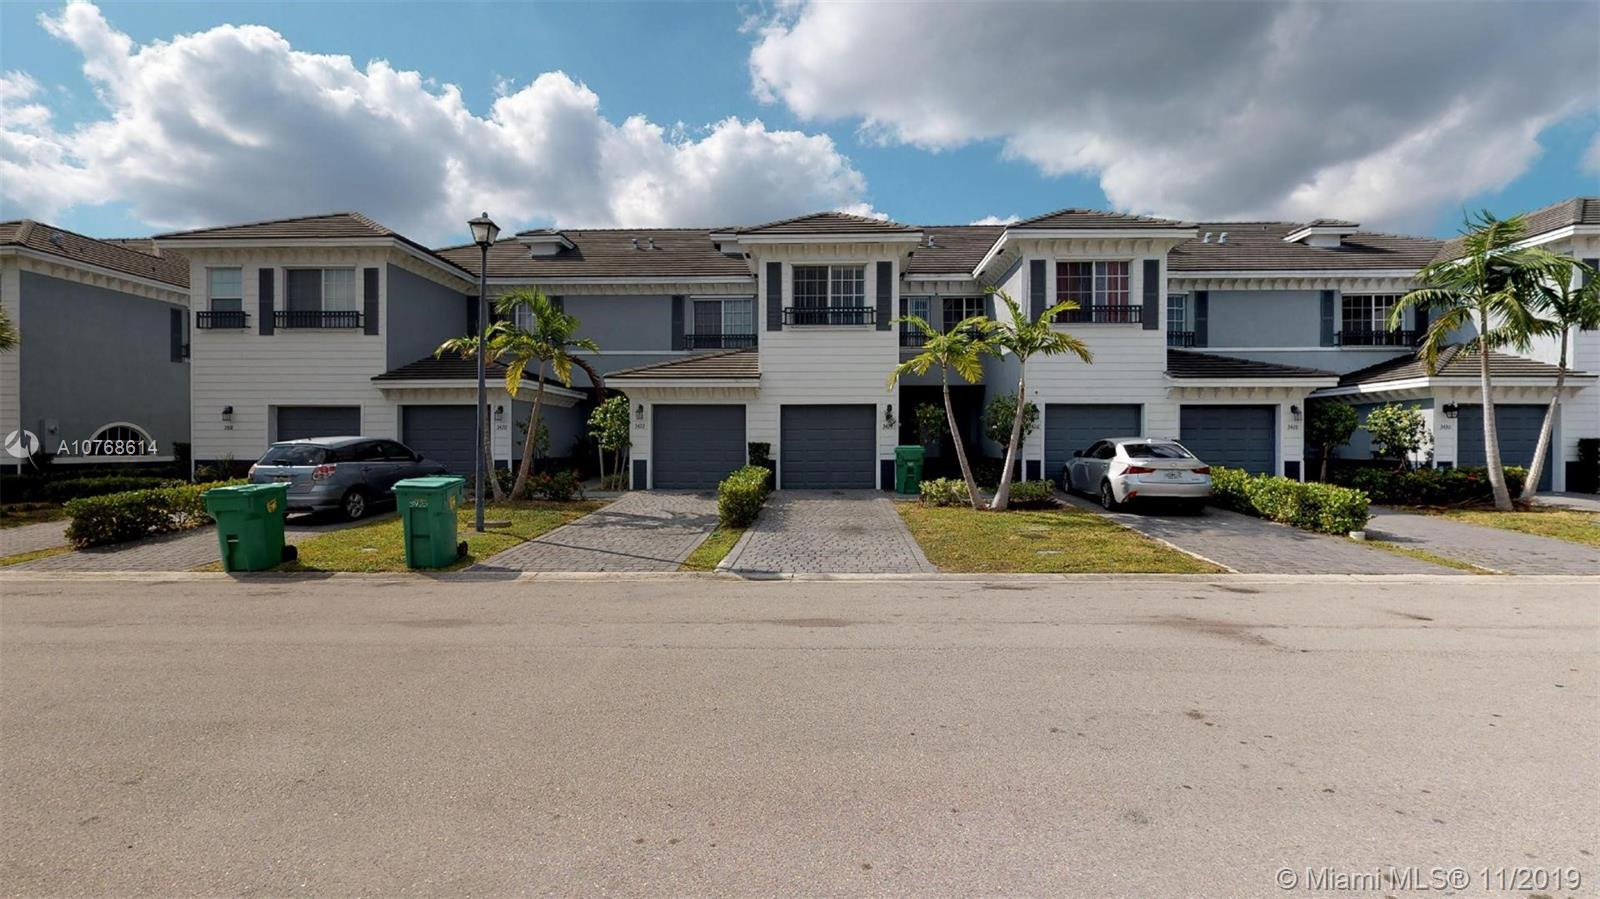 MODERN AND AFFORDABLE TOWNHOUSE IN HEART OF LAUDERHILL. LOCATED NEAR SUNRISE BLVD & SR441. JUST BUILT IN 2014. HOME OFFERS 3 BEDROOMS WITH 2.5 BATHS DESIGN KITCHEN AND EUROPEAN CABINETS, STAINLESS STEEL APPLIANCES, PORCELAIN FLOORS IN 1ST FLOOR AND CARPET IN STAIRS AND UPPER LEVEL. ONE CAR GARAGE ATTACHED.